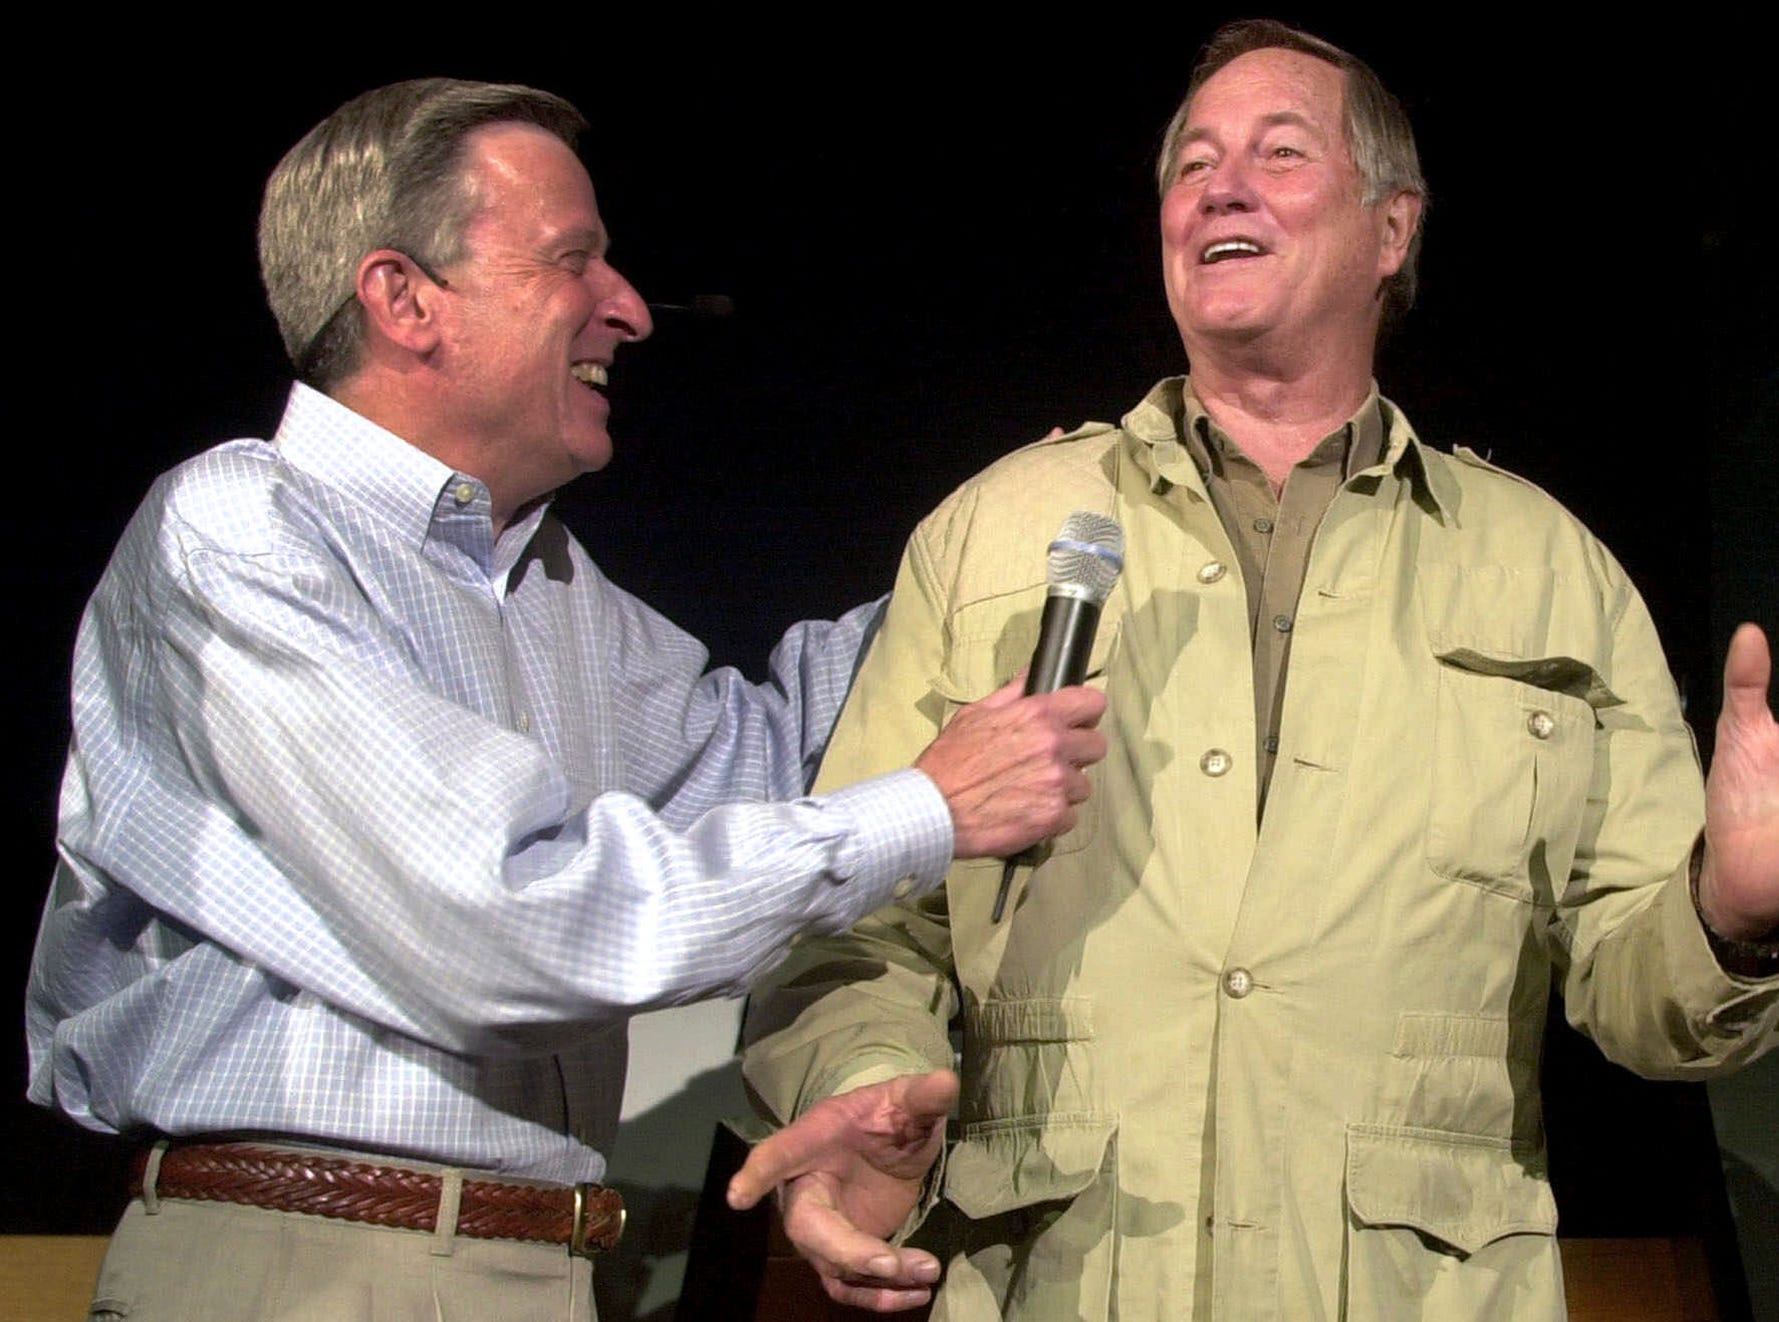 """In this Aug. 28, 2001, file photo, Mutual of Omaha's John Hildenbiddle, left, talks with former nature television show """"Wild Kingdom"""" co-host Jim Fowler in Omaha, Neb. Fowler died Wednesday, May 8, 2019, at his home in Norwalk, Conn. He was 89."""